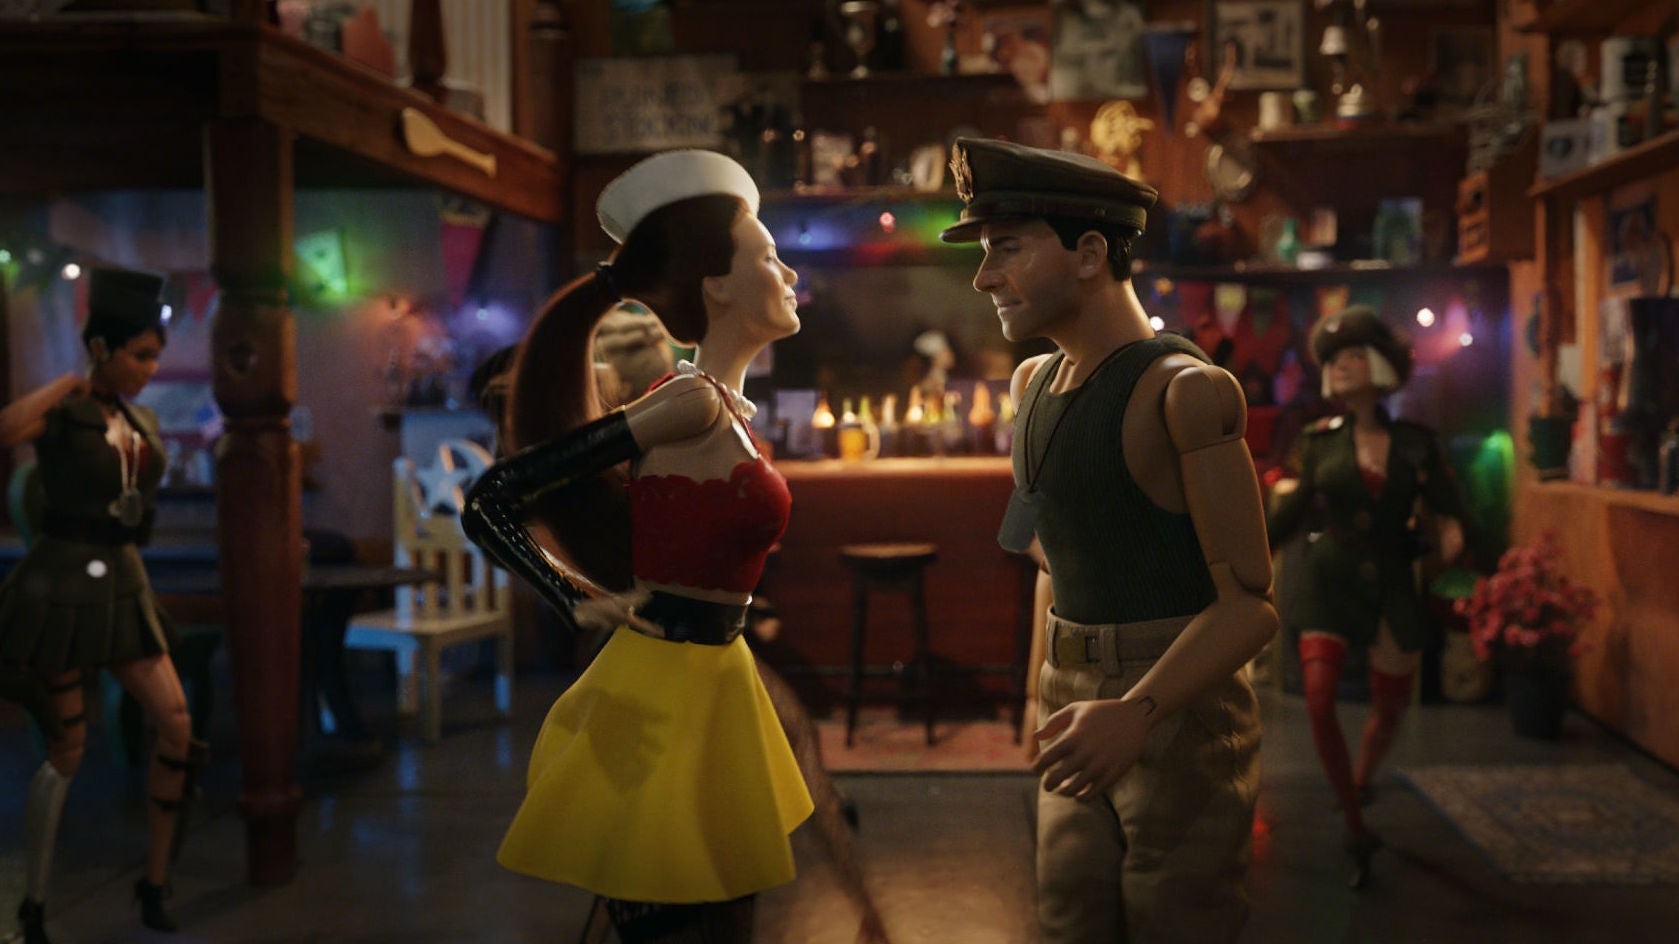 A World Of Toys Comes To Life In Robert Zemeckis' True StoryWelcome To Marwen